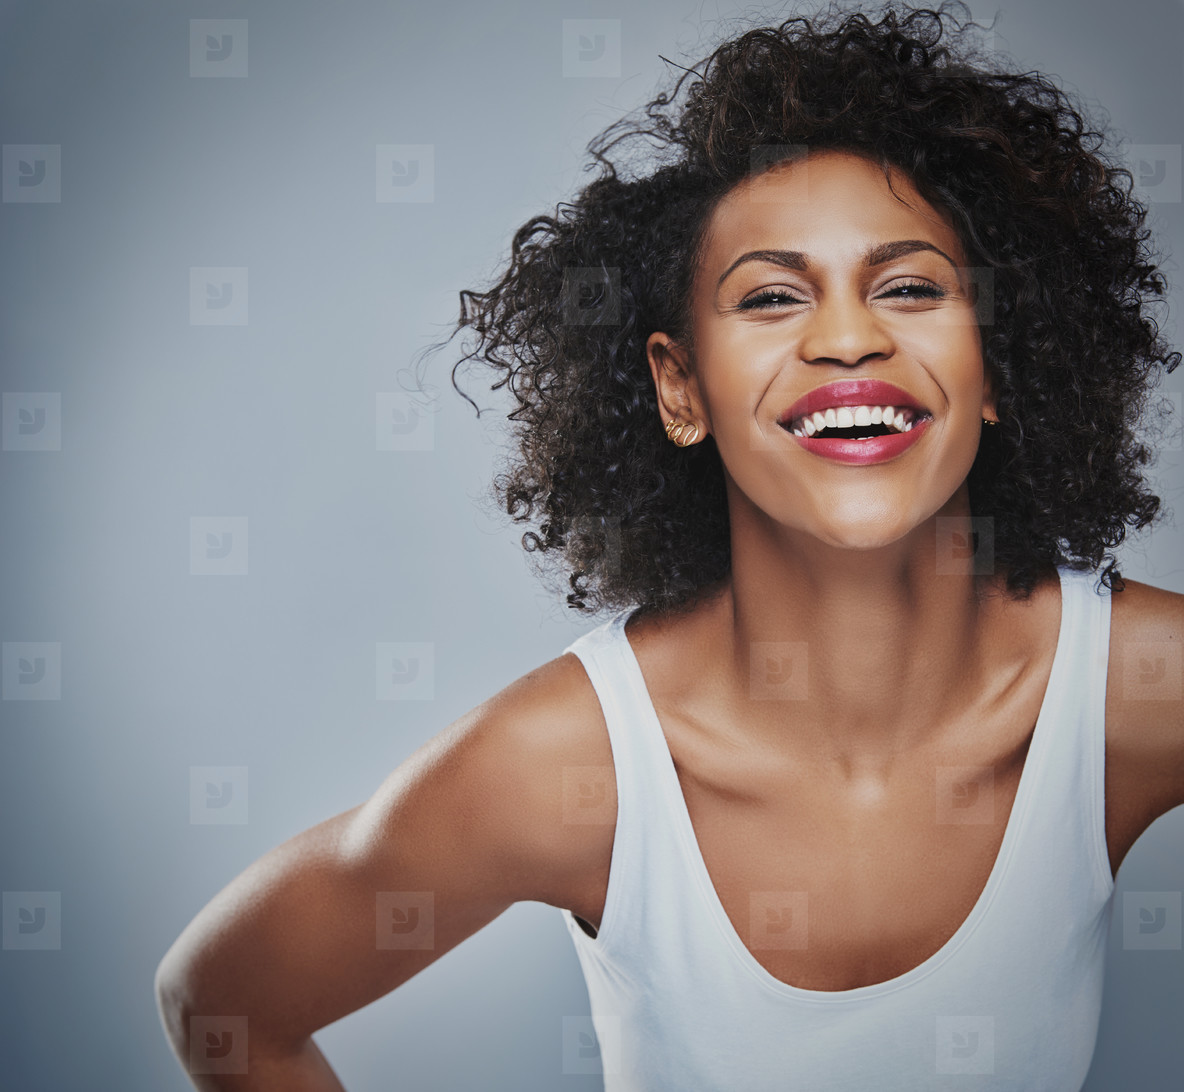 Laughing female leaning forward with copy space